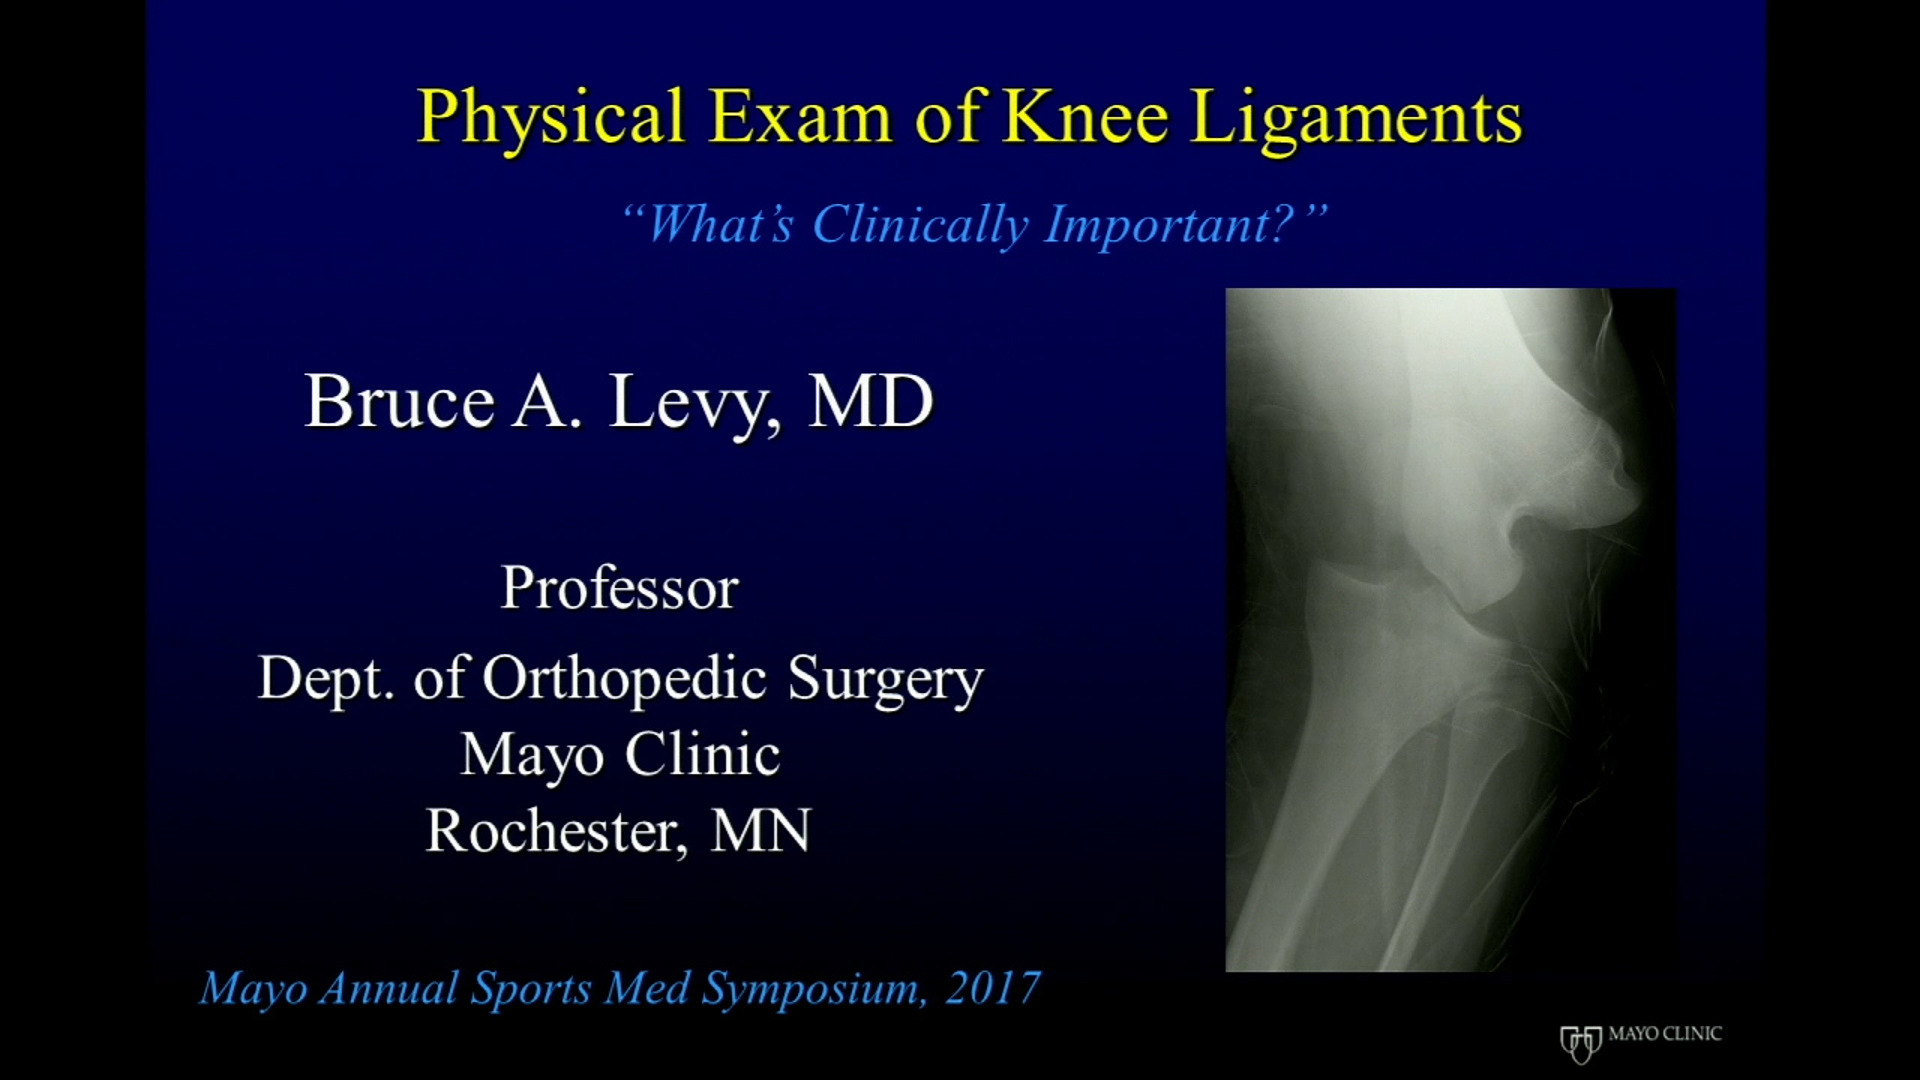 Physical Examination of Knee Ligaments: What's Clinically